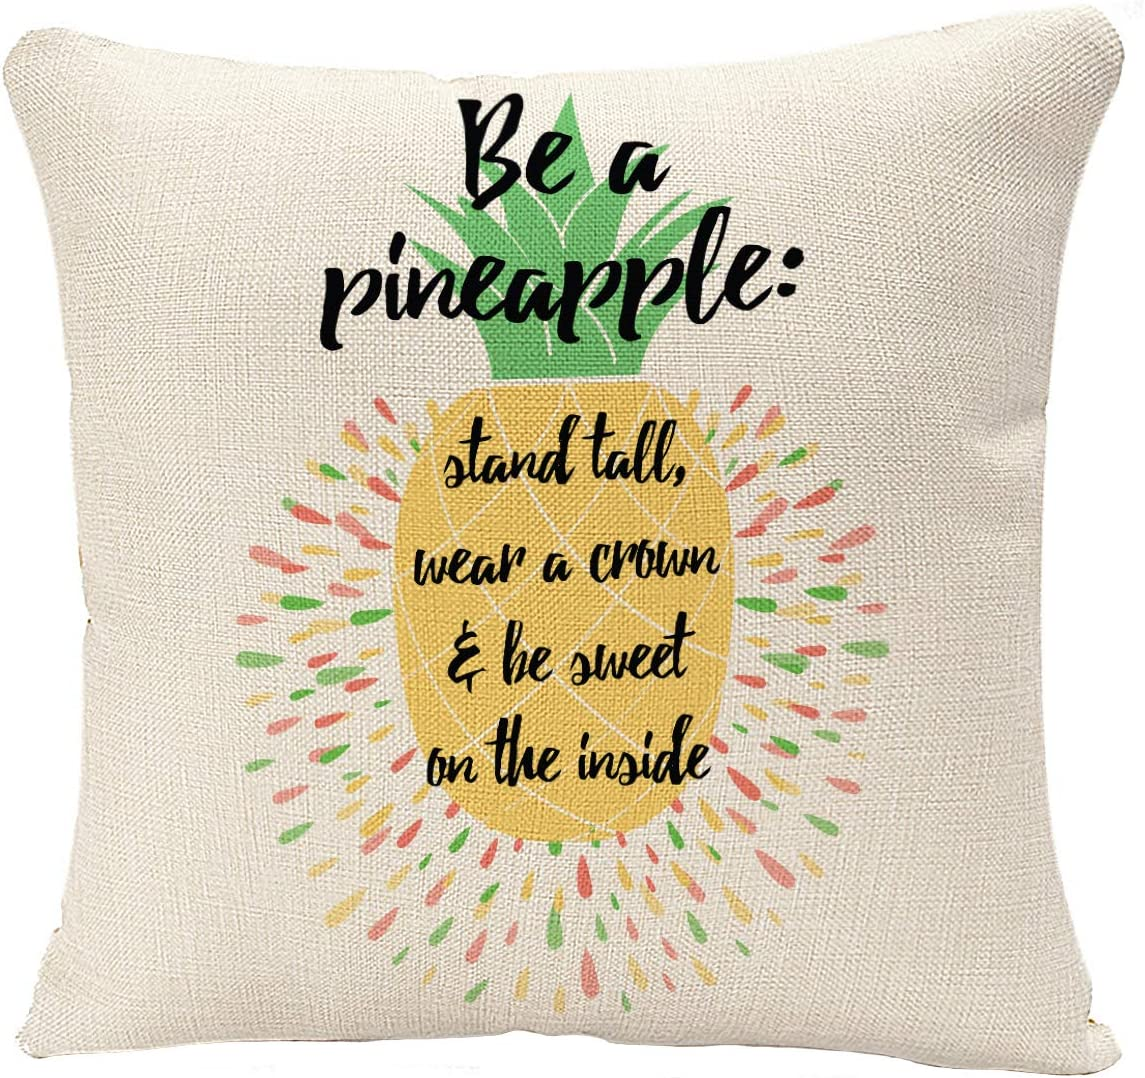 YGGQF Throw Pillow Cover Yellow Quote Motivational with Pineapple Summer Fresh Design Juicy and Sweet in Bright Color Fruit Food Decorative Pillow Case for Couch Sofa Bed Chair 18x18 Inch